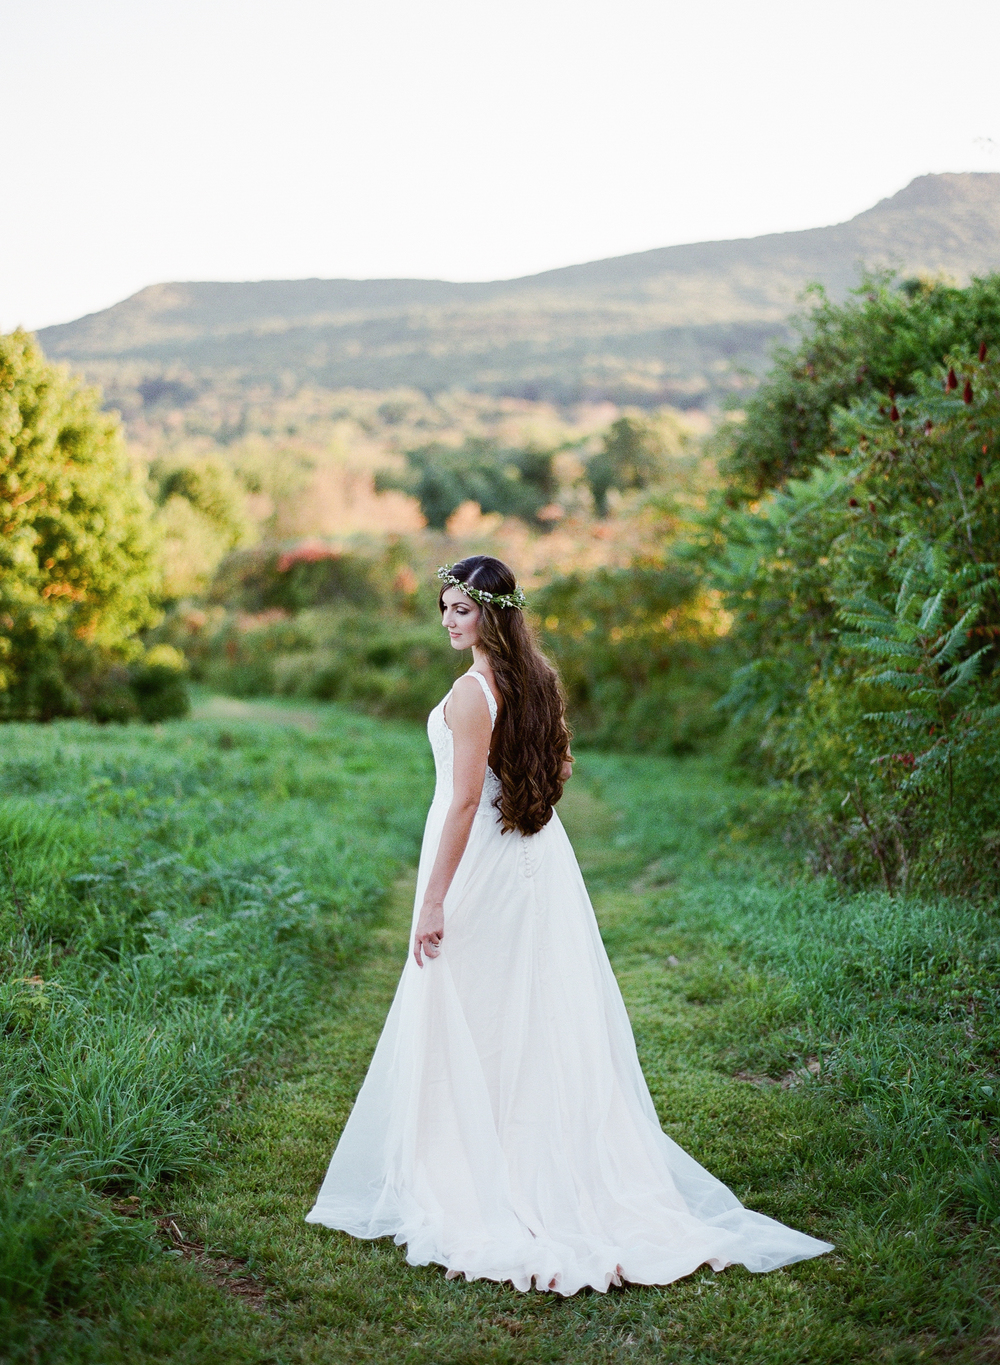 Outdoor Wedding Photography - Melanie Zacek